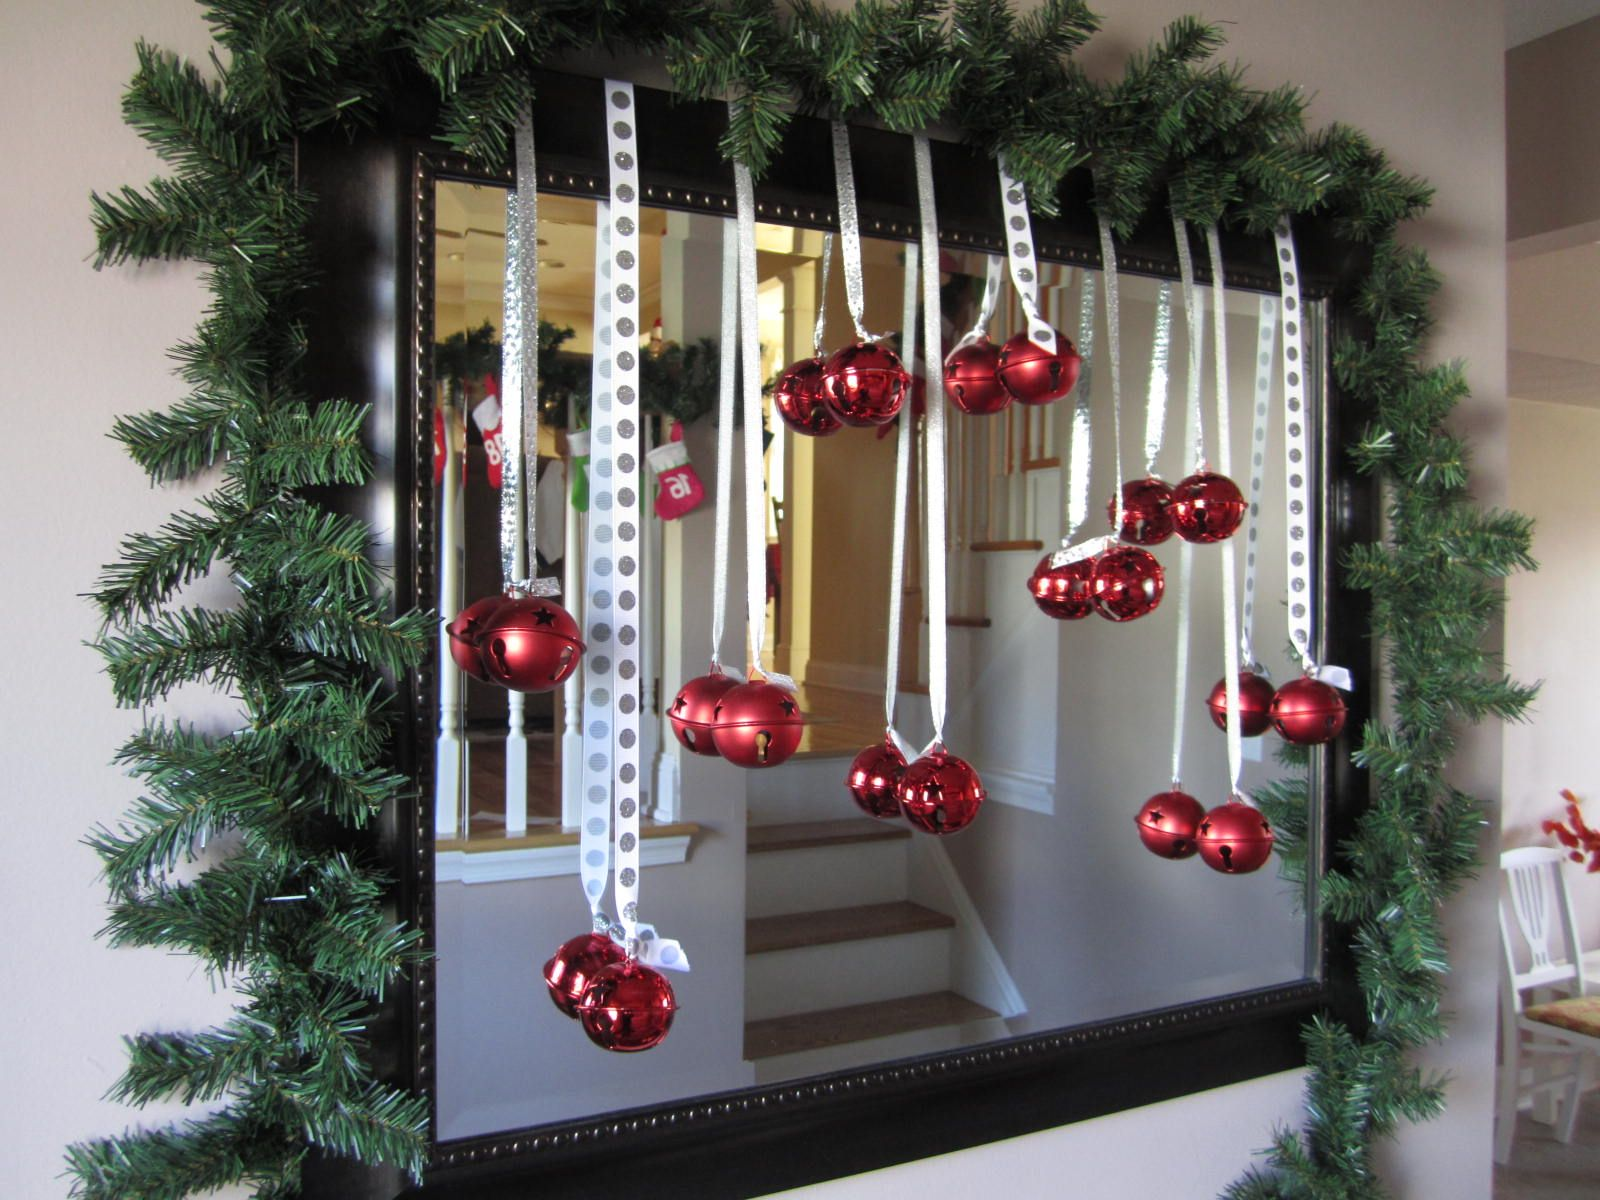 LOVE this idea! Hanging decorations in front of or on a mirror. i put a big wreath on my mirror and it looks amazing!